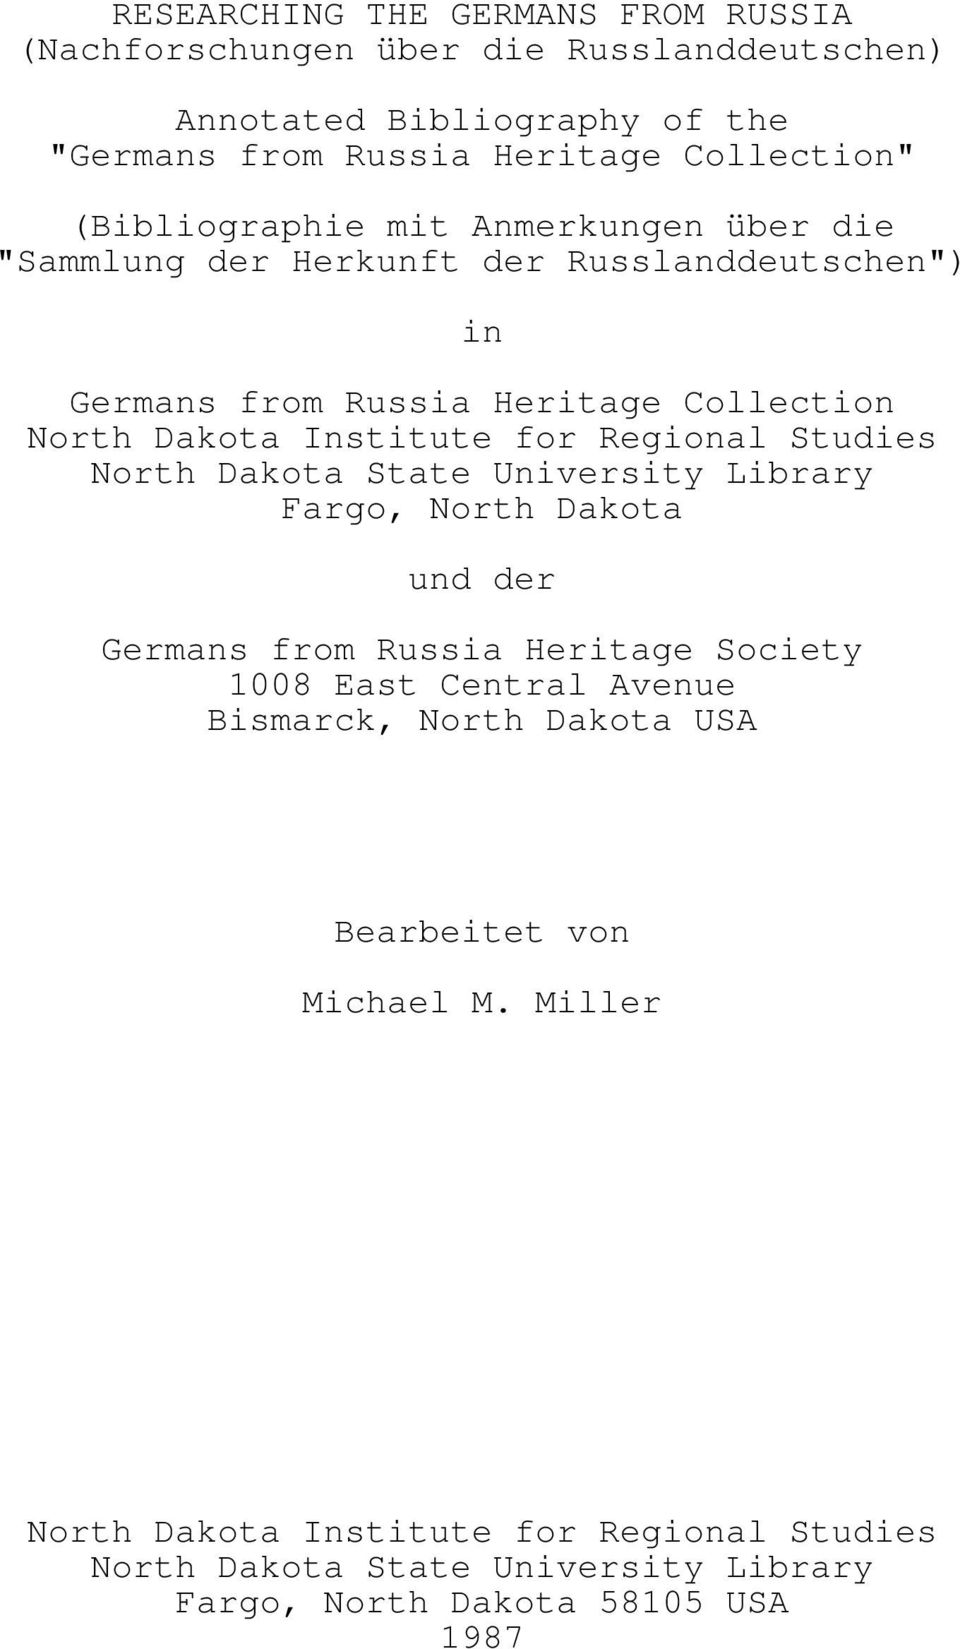 Regional Studies North Dakota State University Library Fargo, North Dakota und der Germans from Russia Heritage Society 1008 East Central Avenue Bismarck,